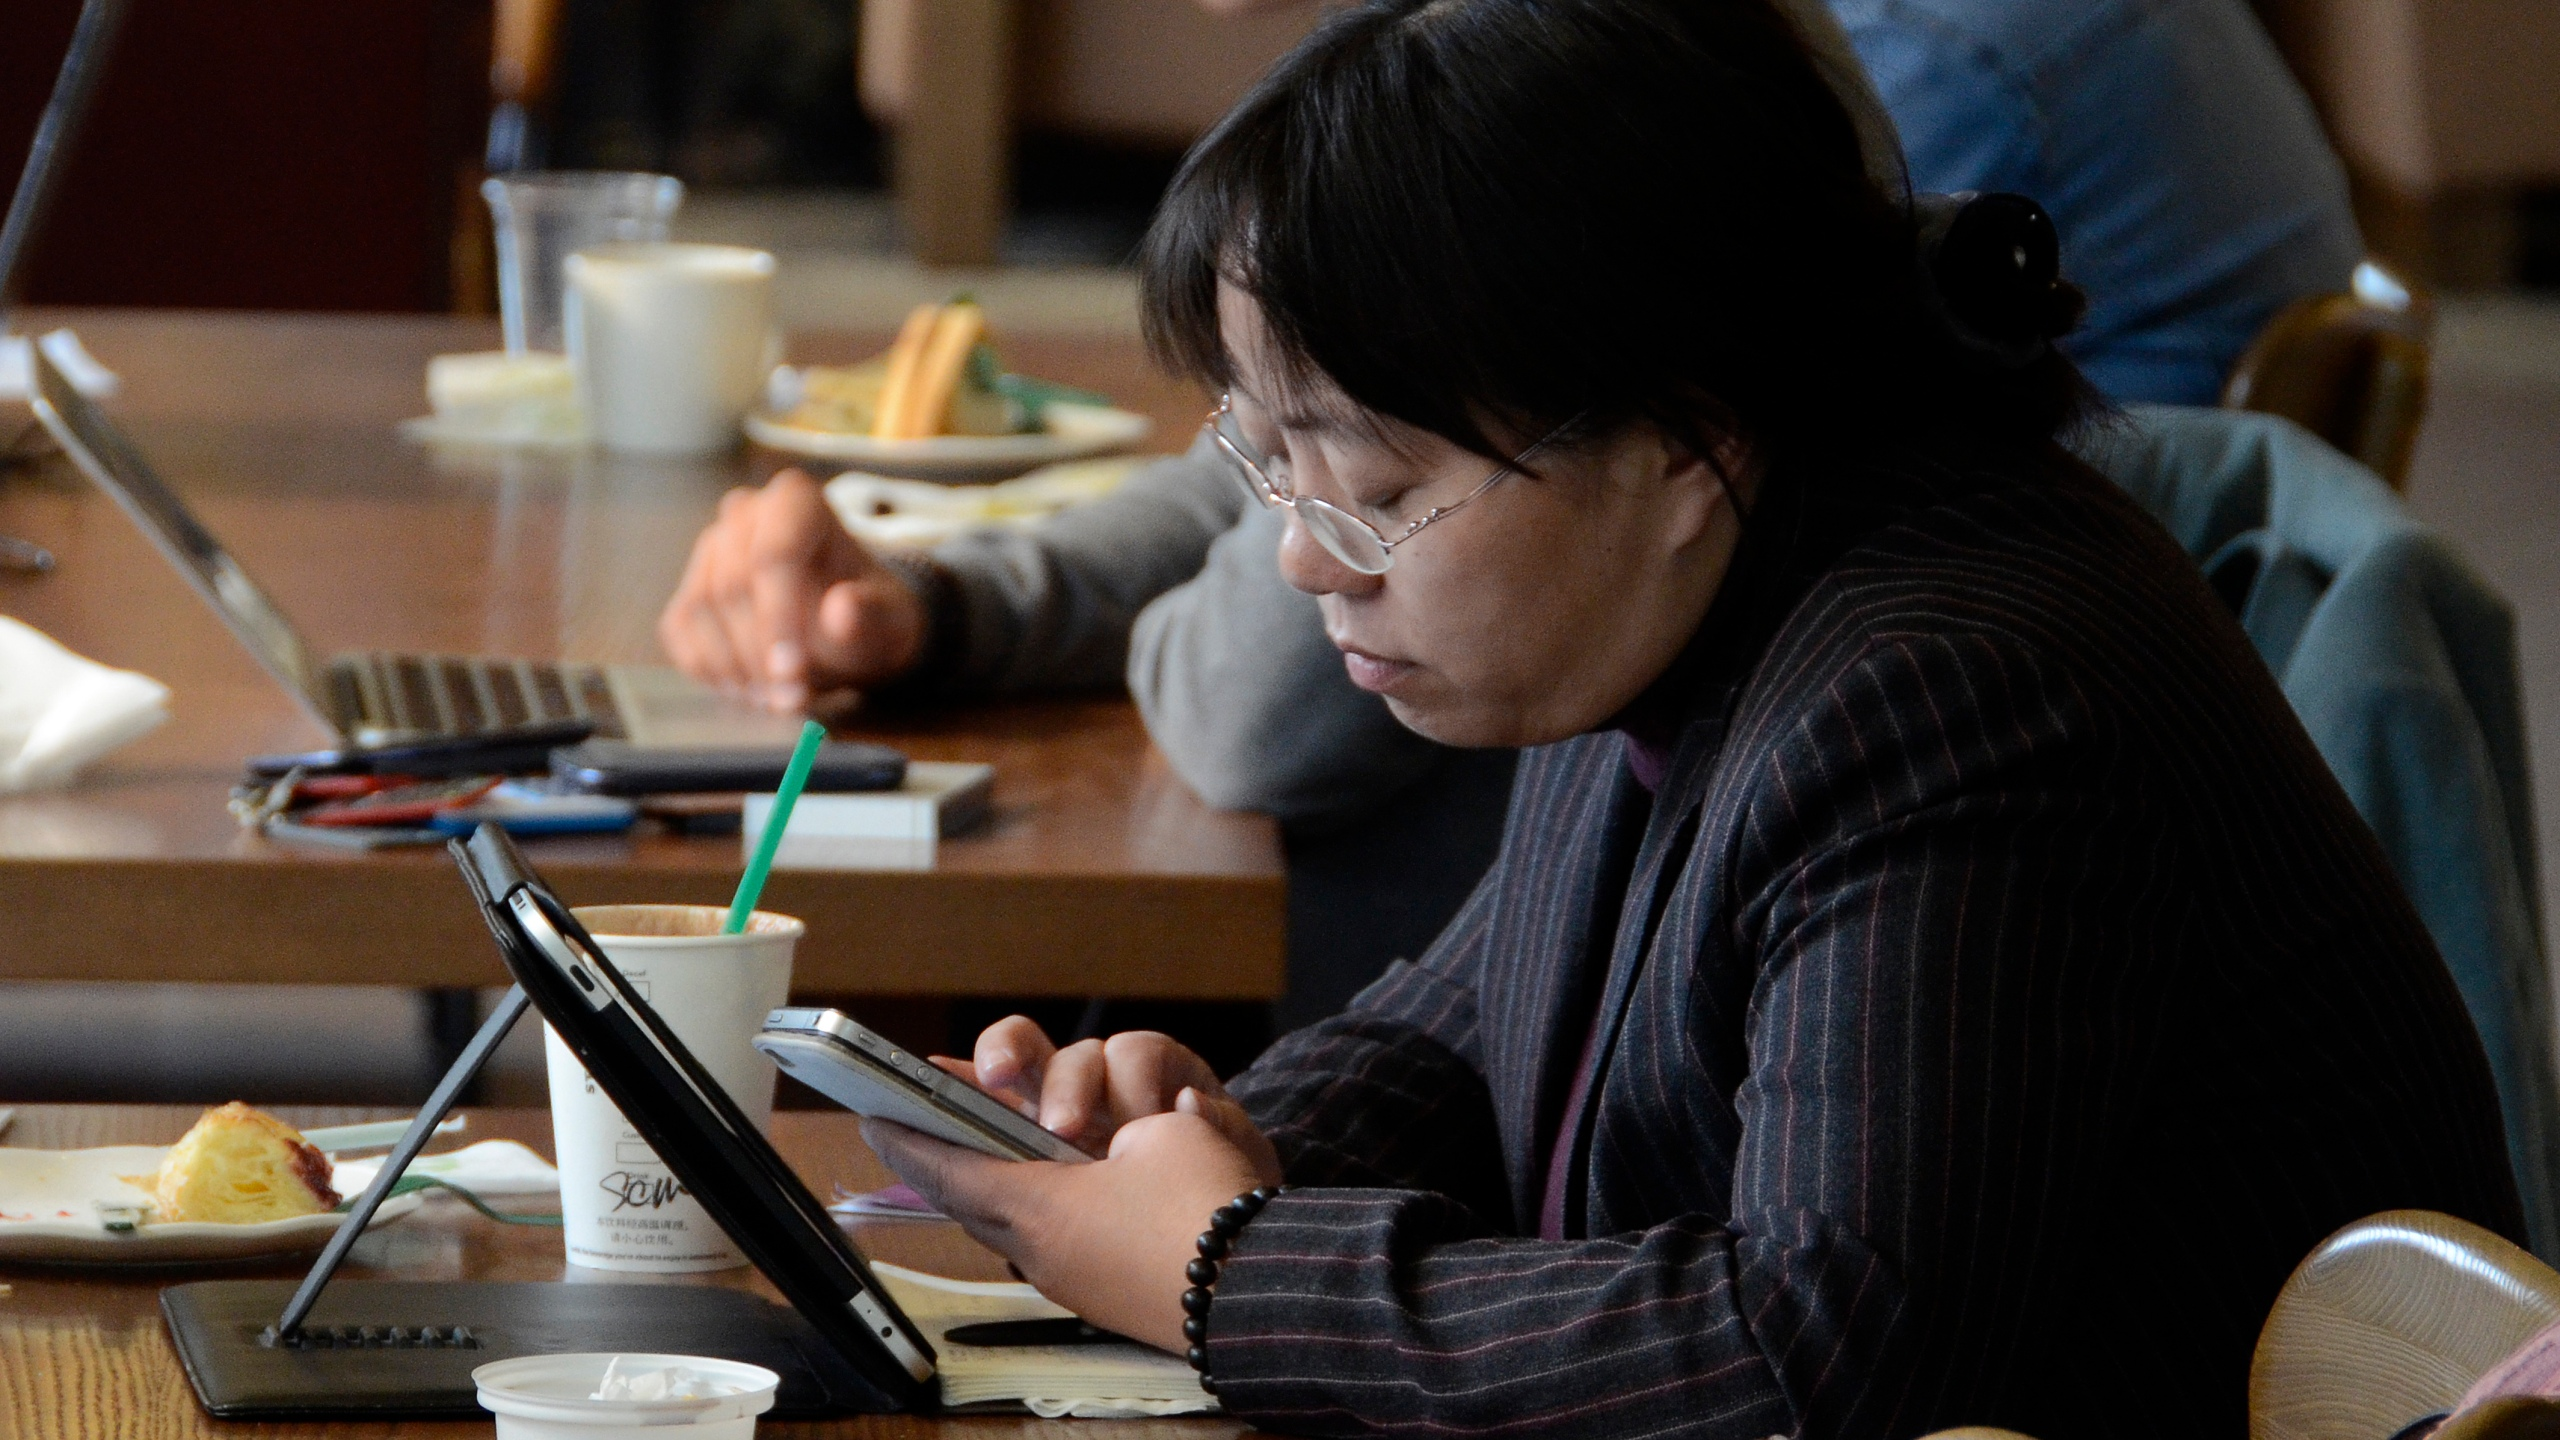 A woman uses her iPhone and iPad at a cafe in Beijing on Nov. 2, 2012. (Credit: Wang Zhao / AFP / Getty Images)